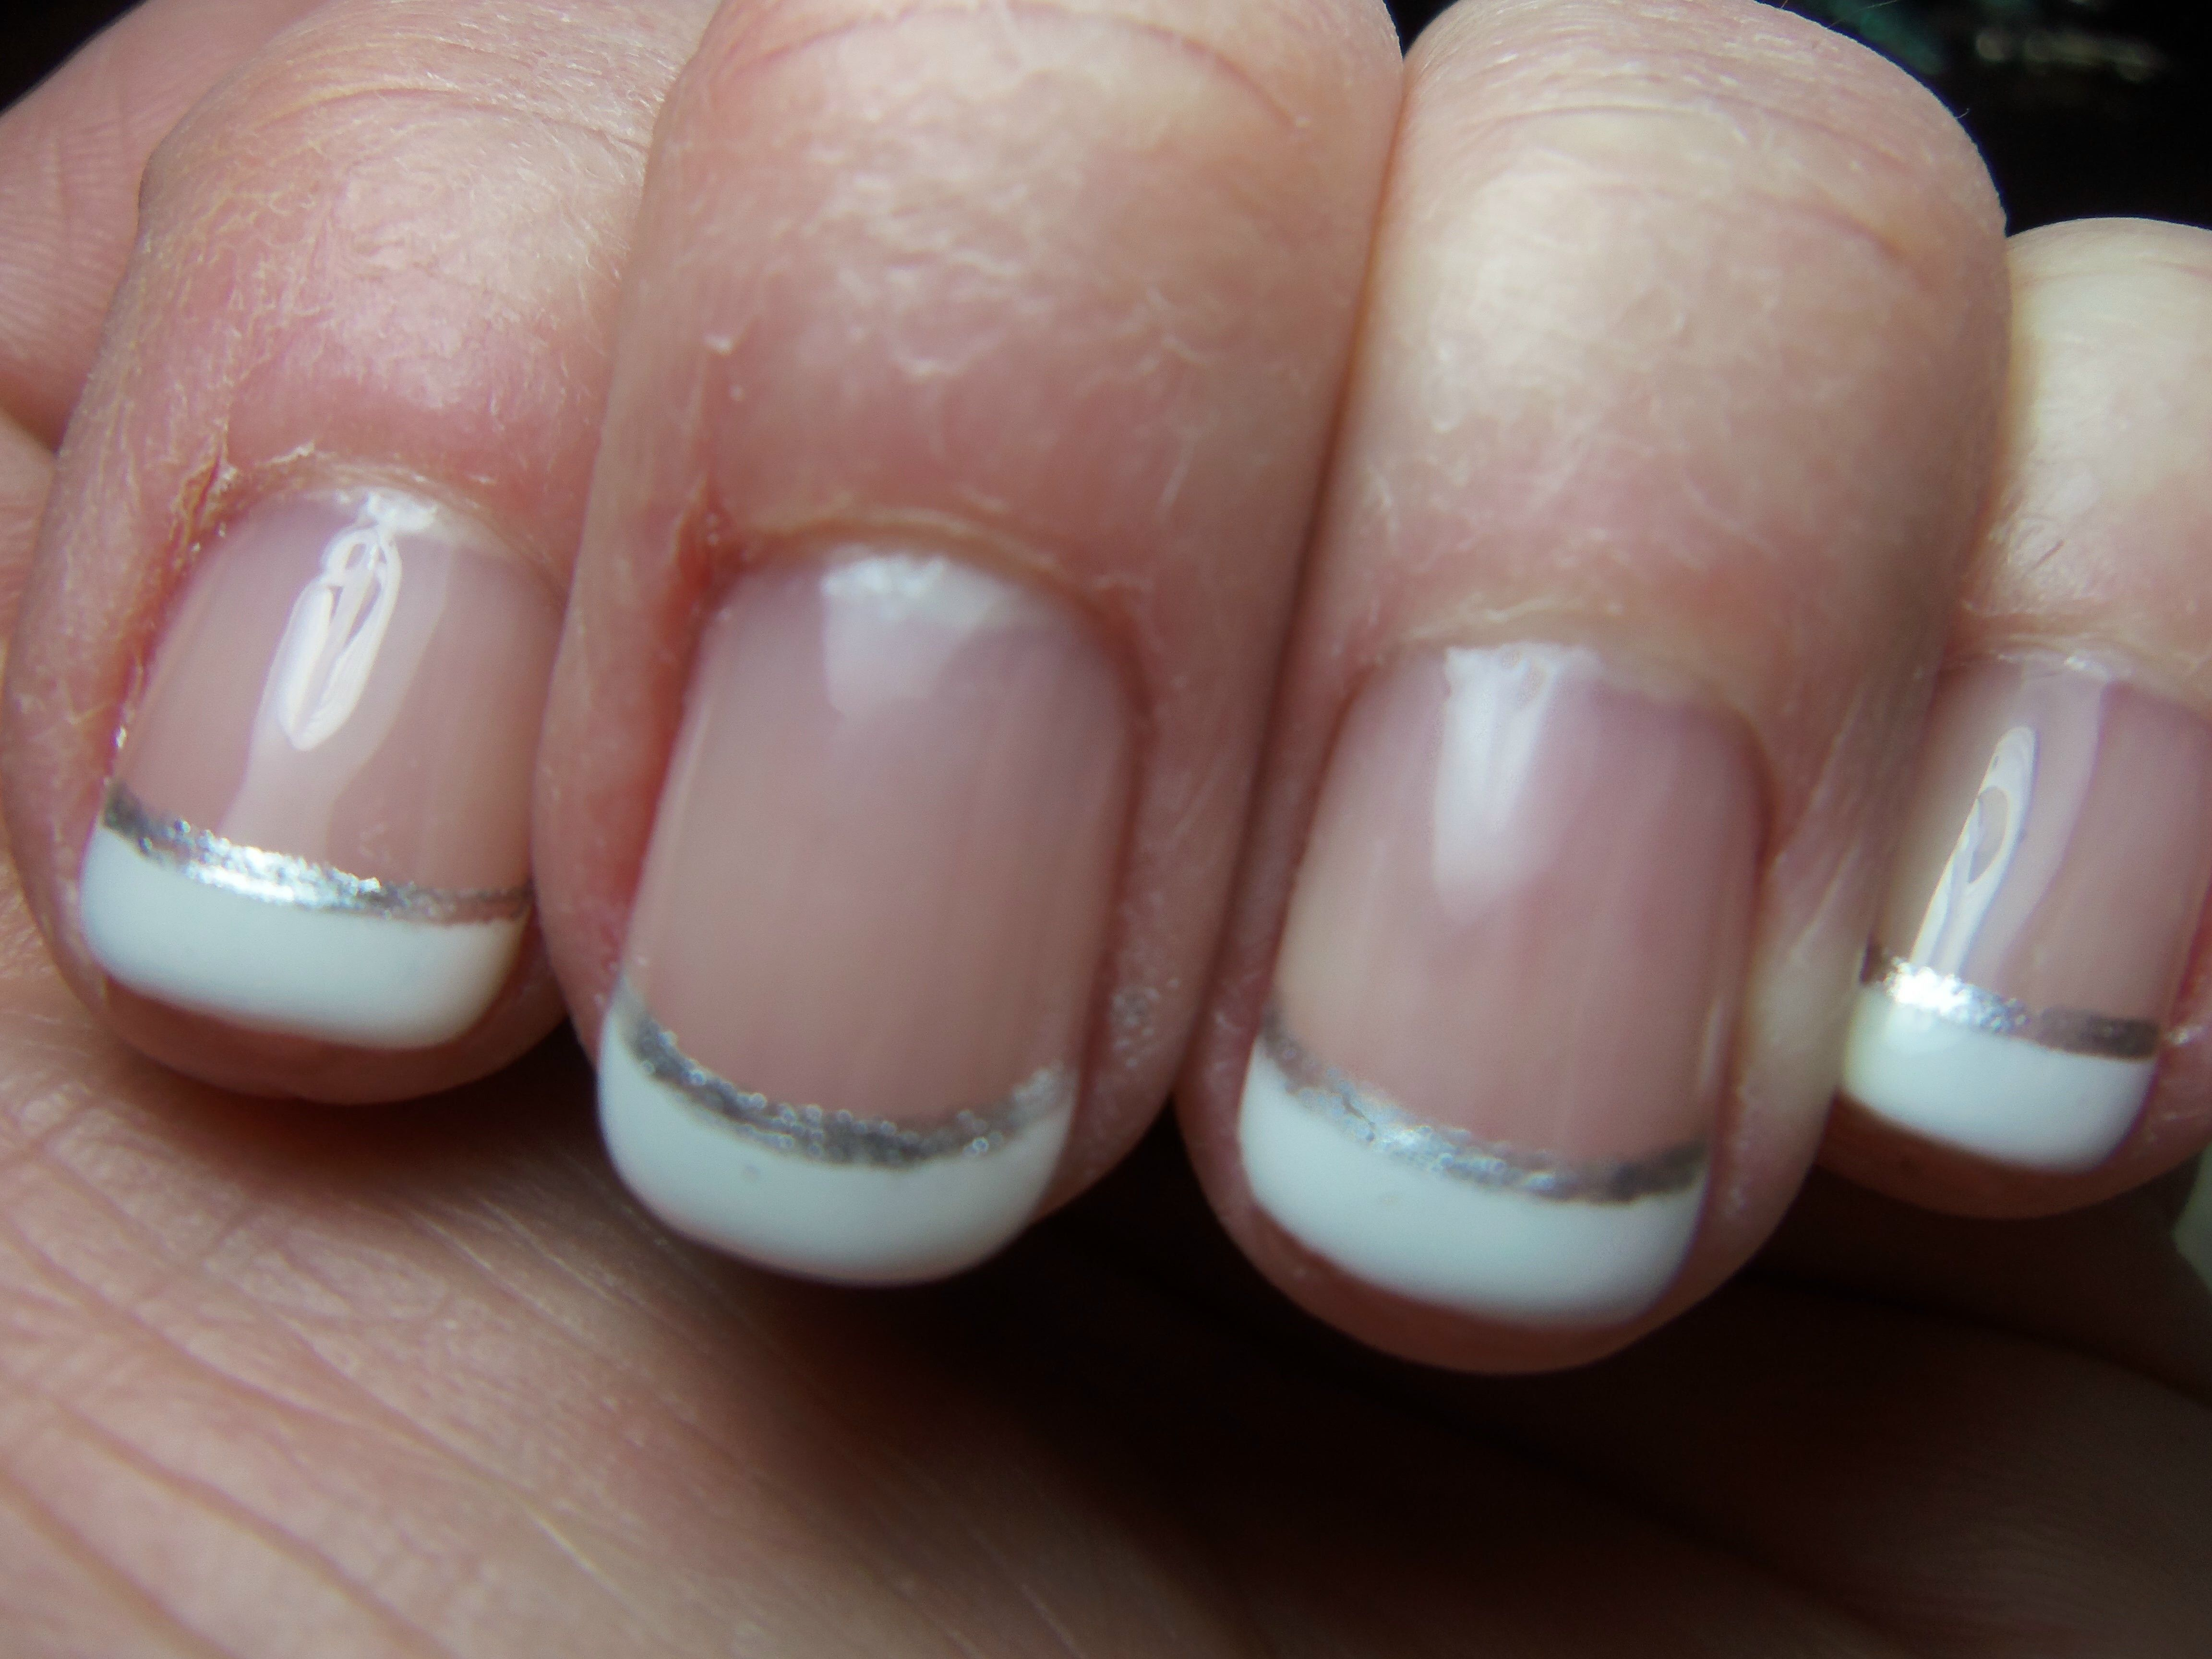 keep my nails very short. French gel manicure, clear polish with